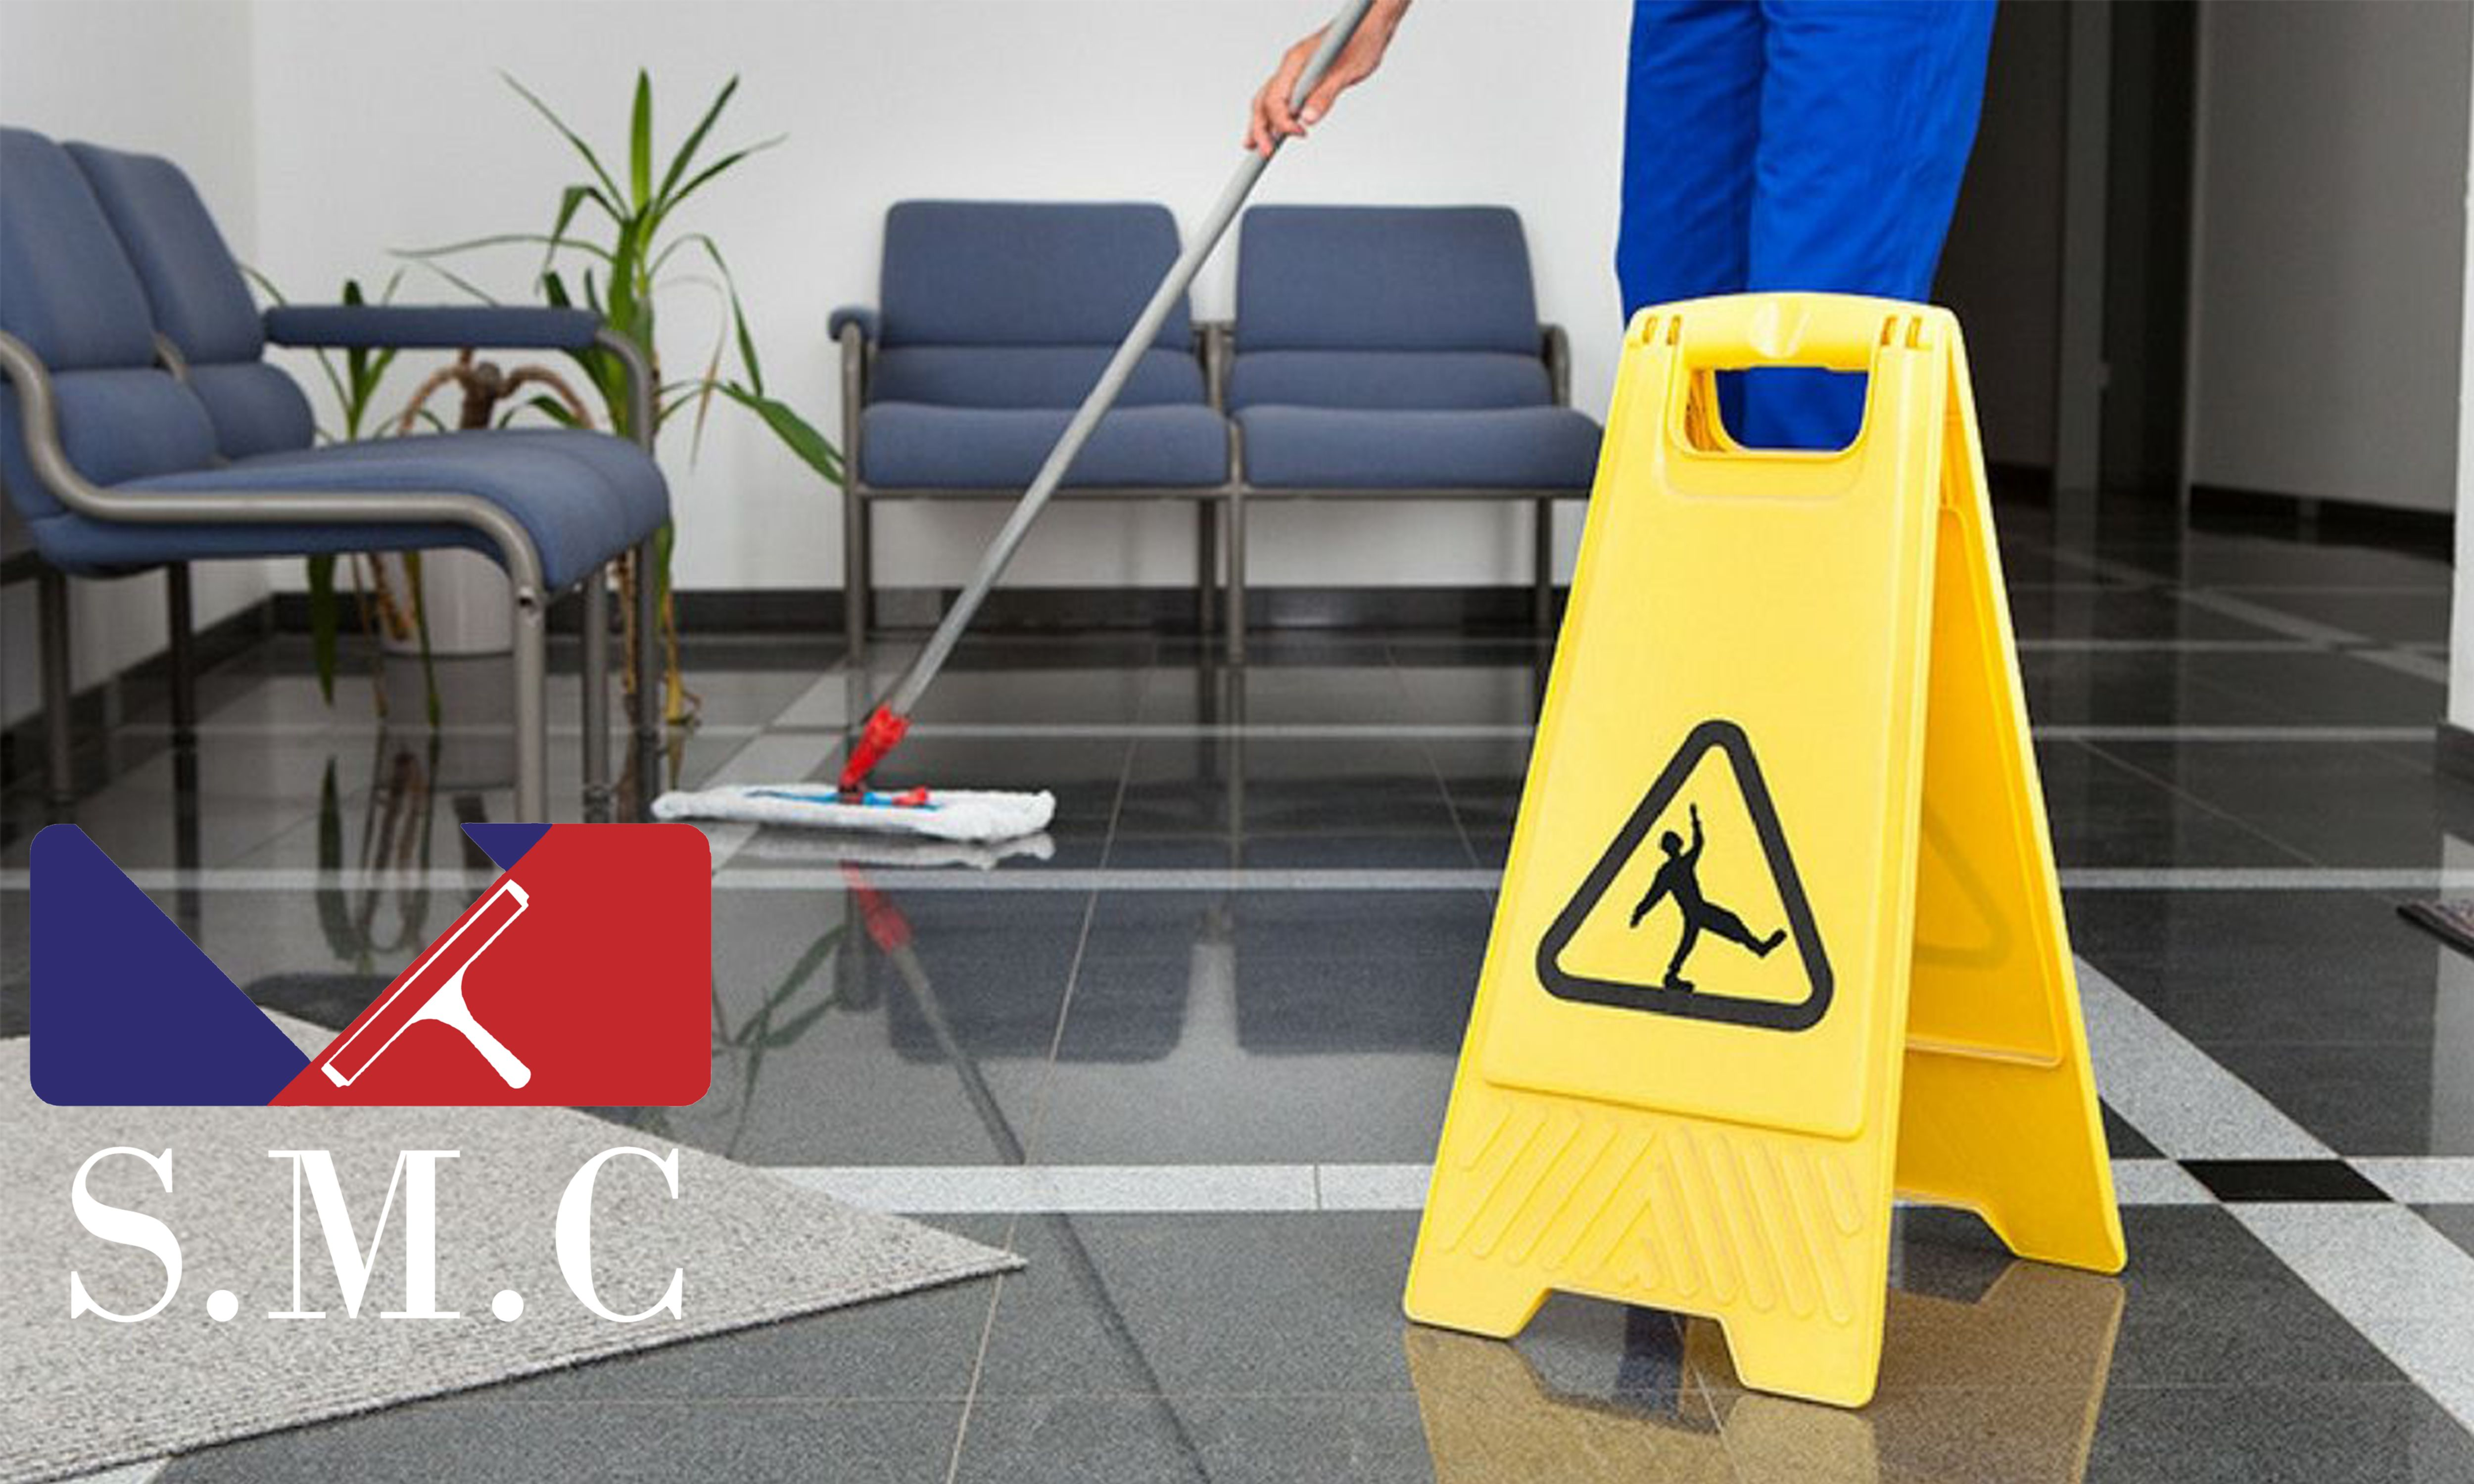 Did You Know That A Clean Environment Increases Productivity In